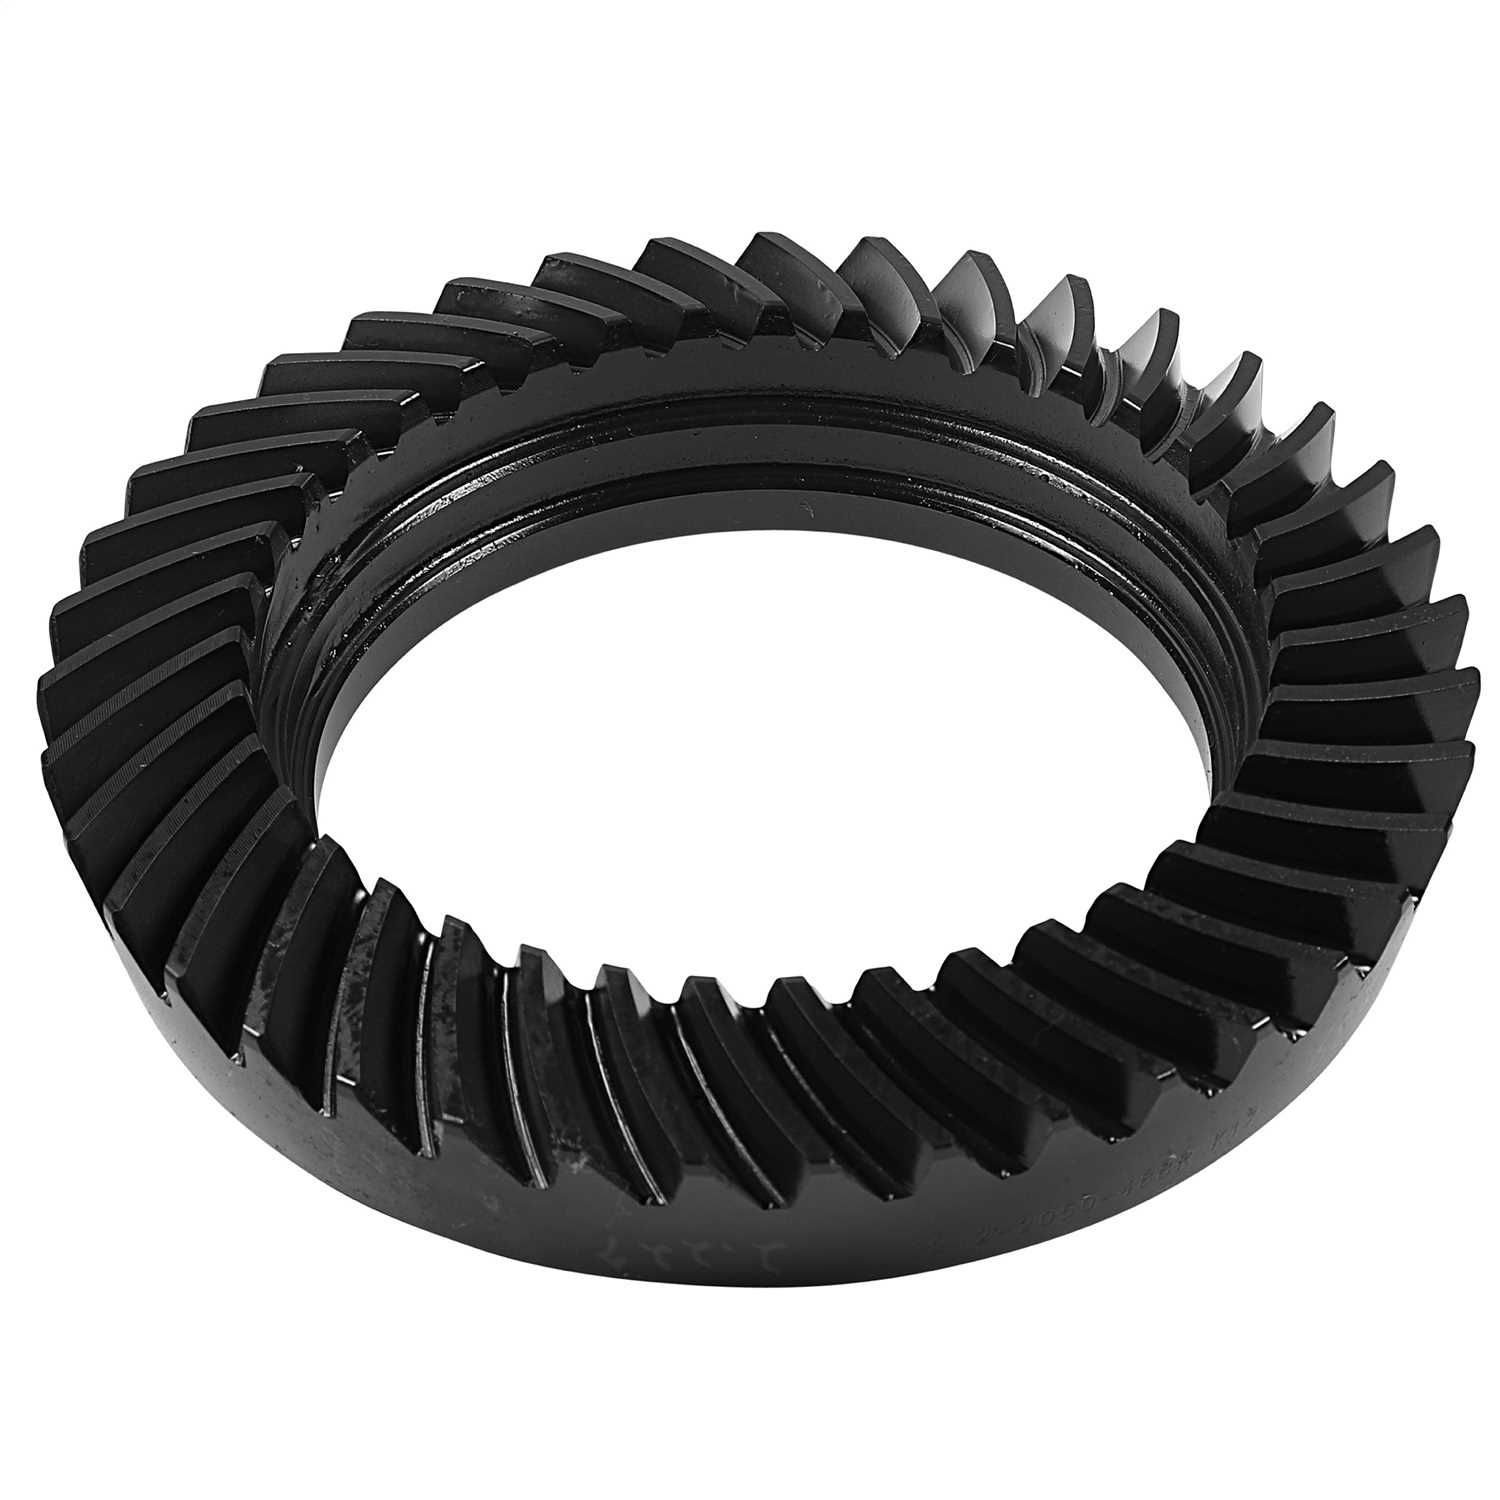 1-2152-513 G2 Axle and Gear Ring and Pinion Set